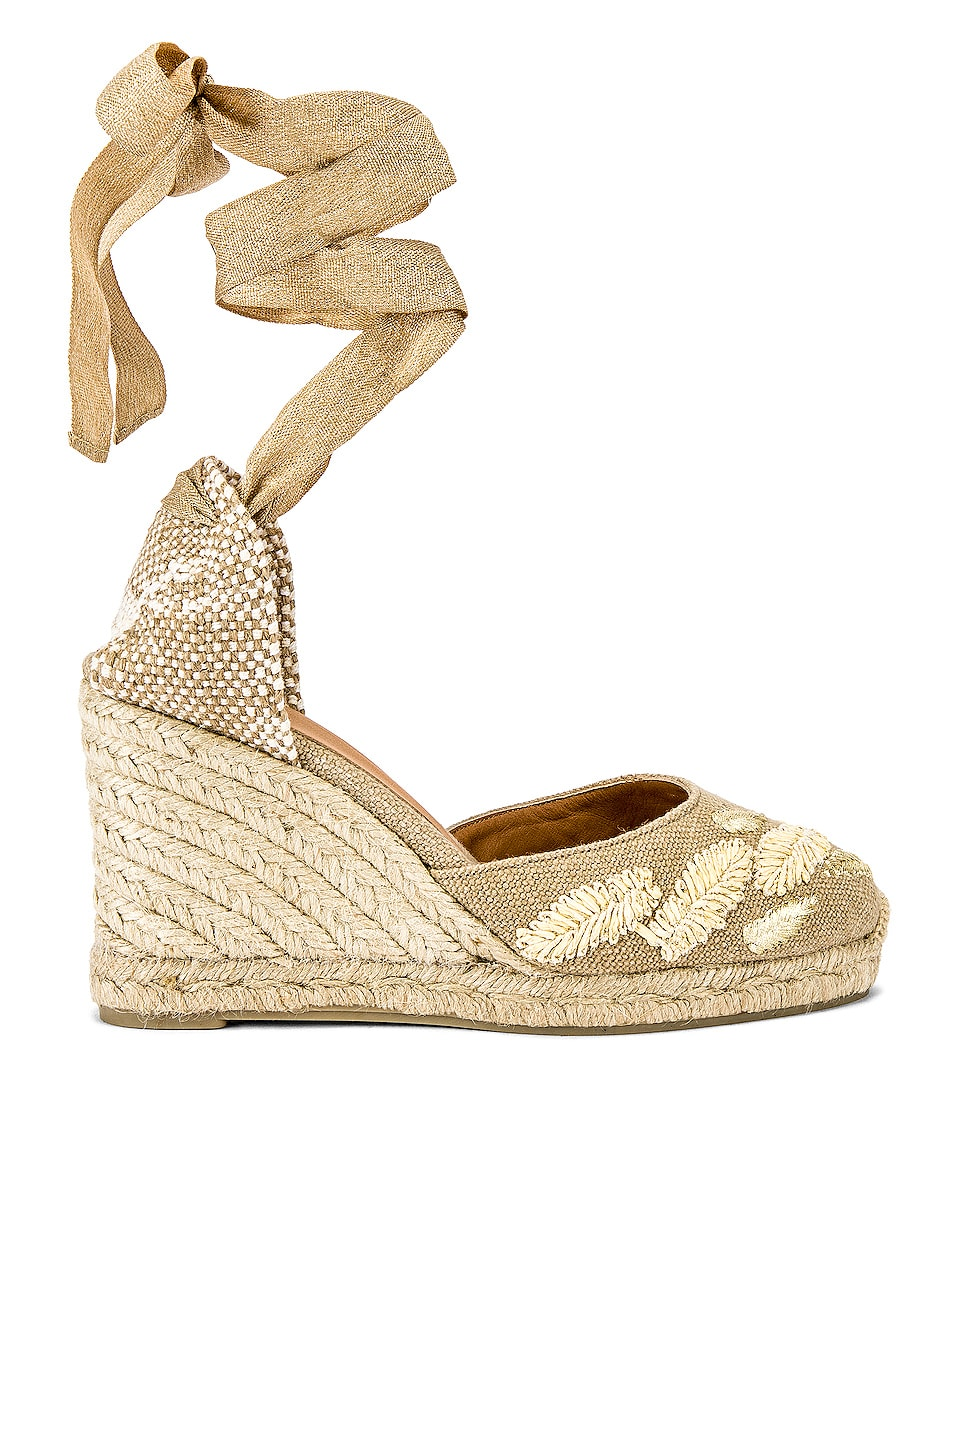 Castaner Carina Wedge in Natural & Oro